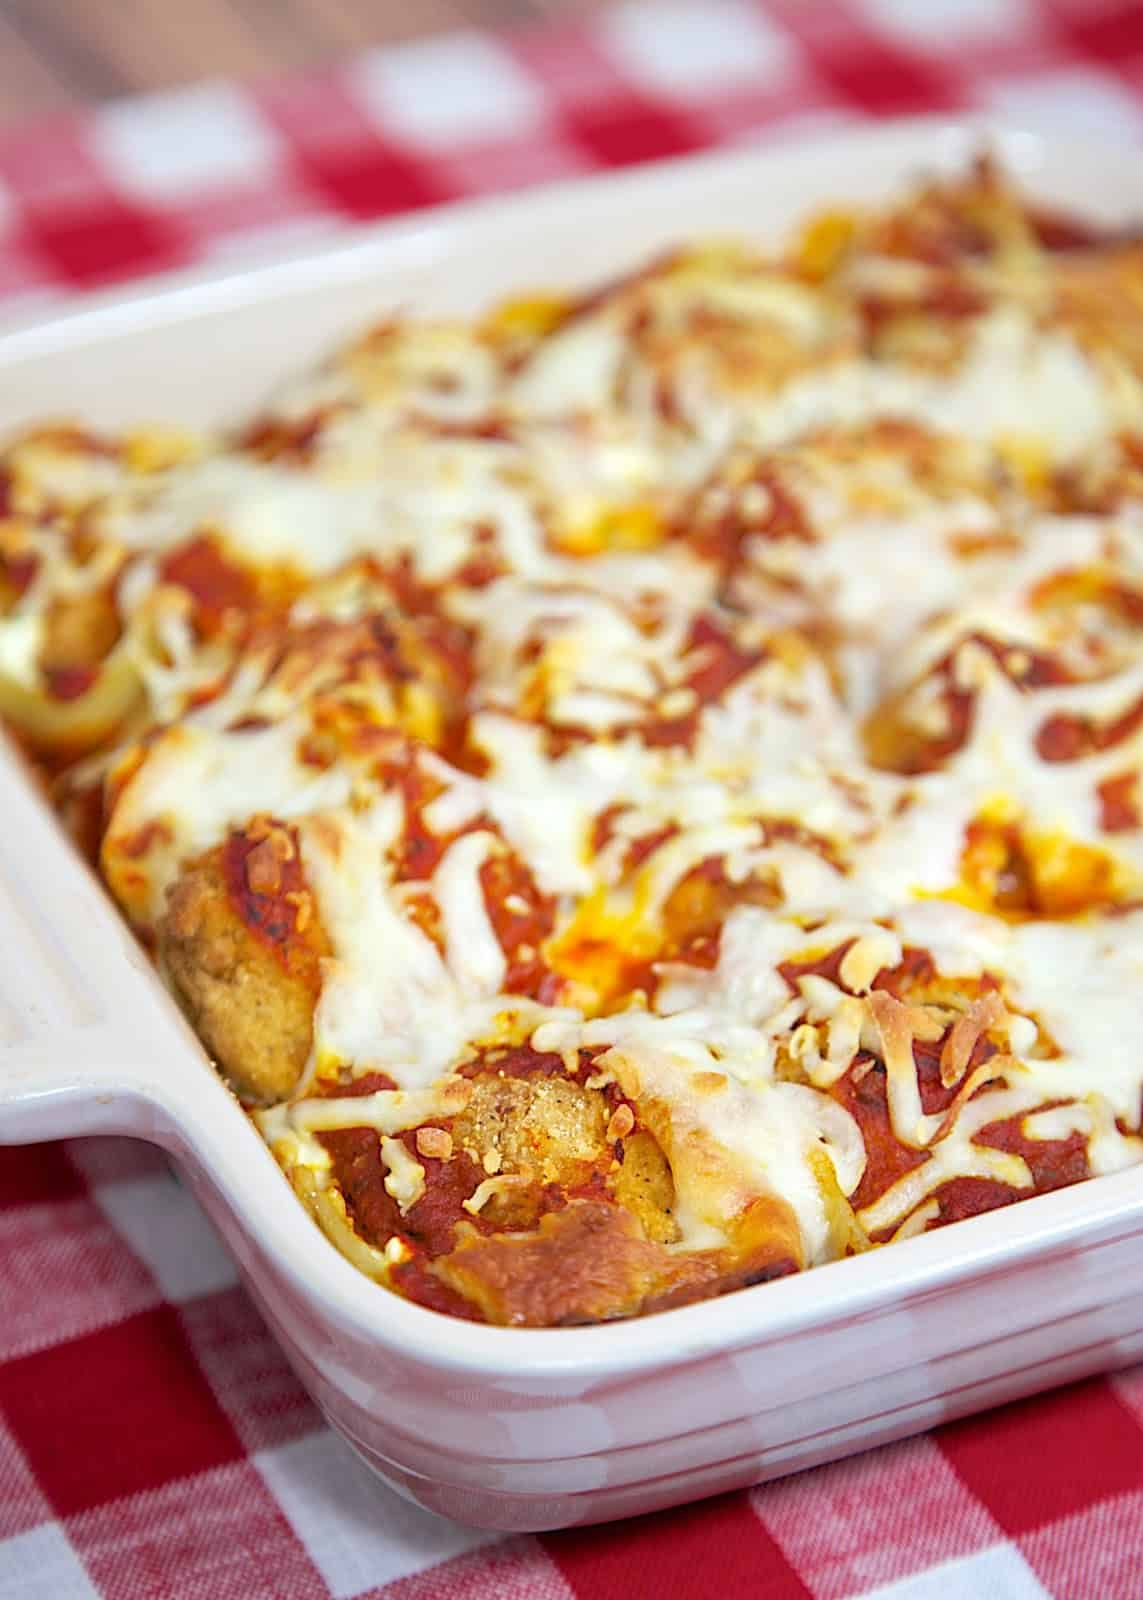 Chicken Parmesan Stuffed Shells -  jumbo pasta shells stuffed with cheese, frozen popcorn chicken and spaghetti sauce - also makes a great freezer meal! Easy make ahead weeknight meal!